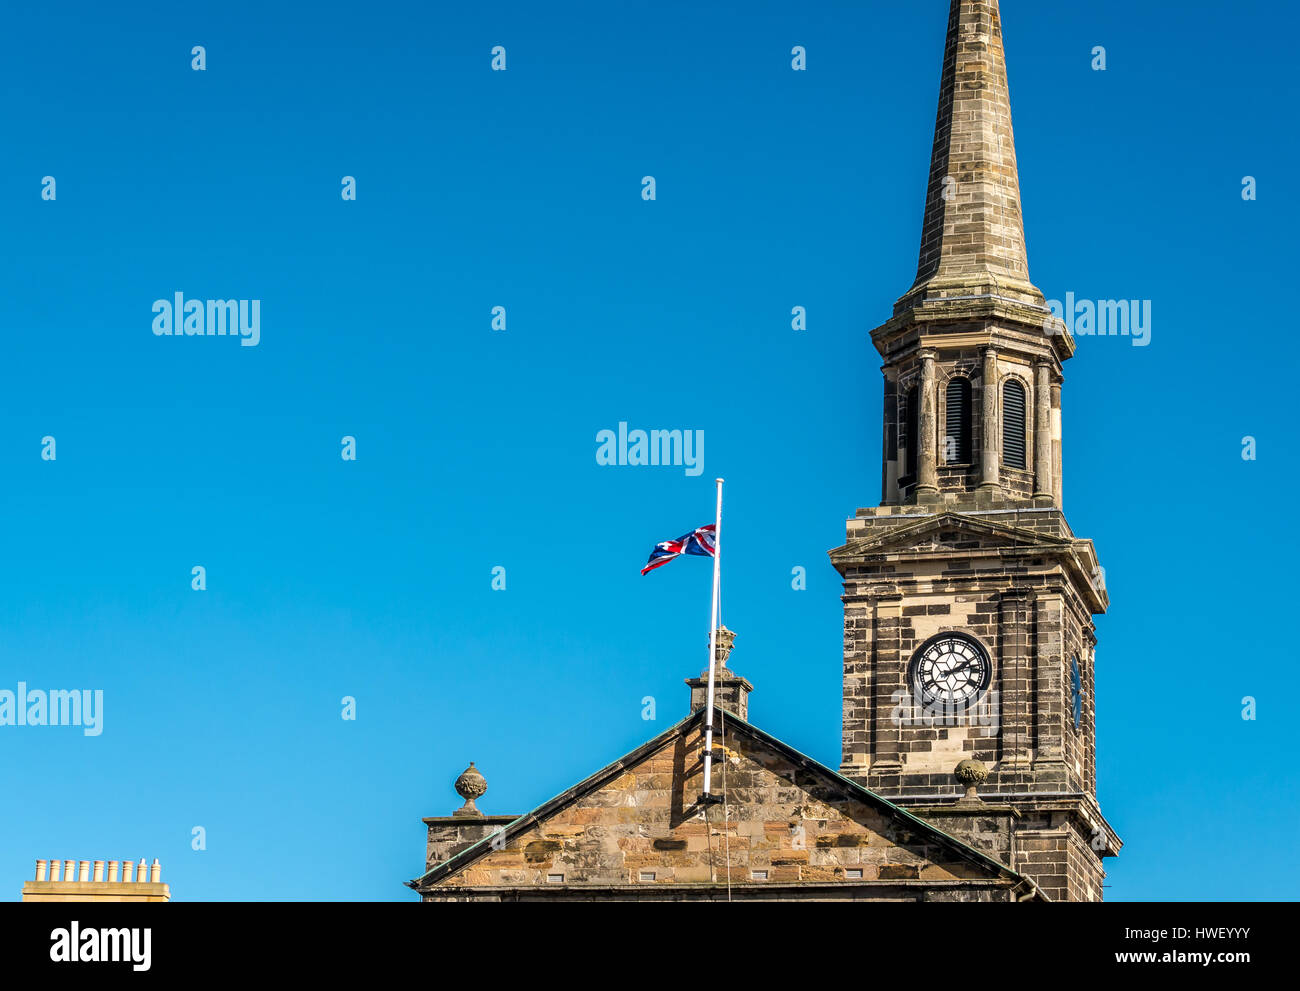 Haddington Town Hall with Union Jack and clock spire, East Lothian, Scotland, UK - Stock Image